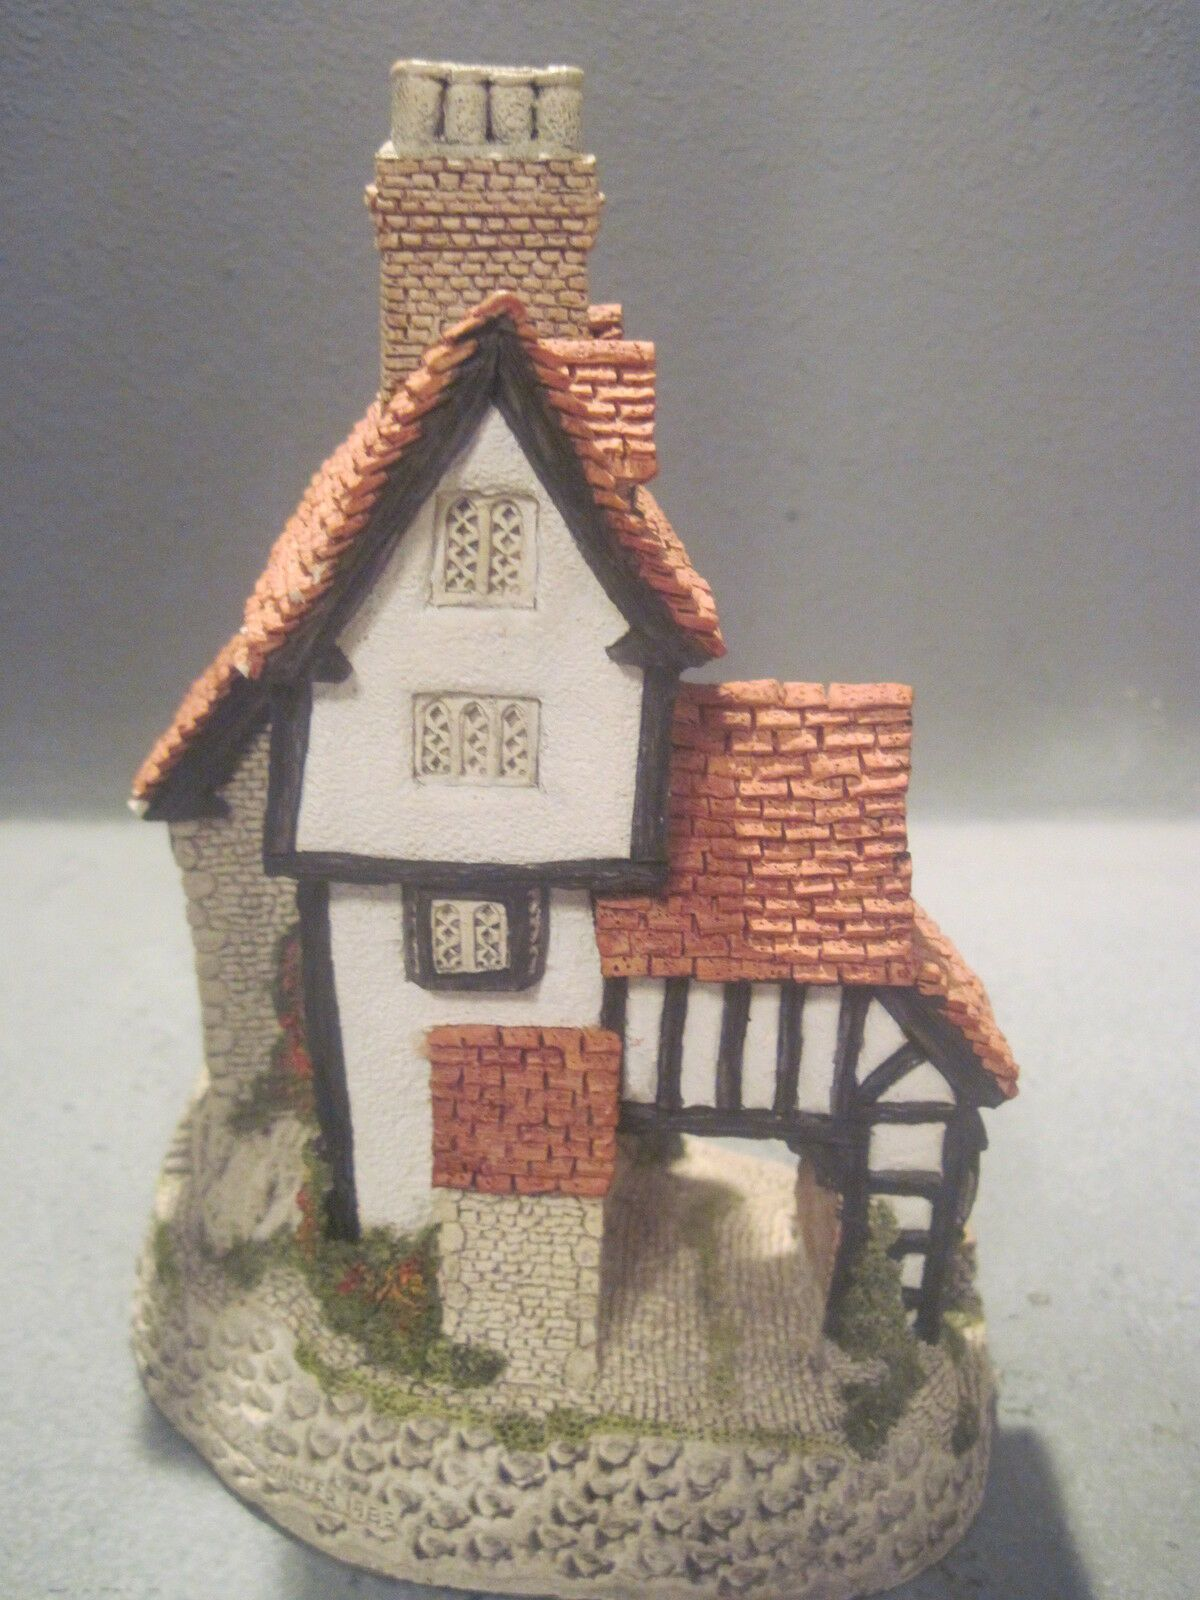 Squires Hall David Winter Cottages In The Original Box Ebay Original Box The Originals Christmas Ornaments